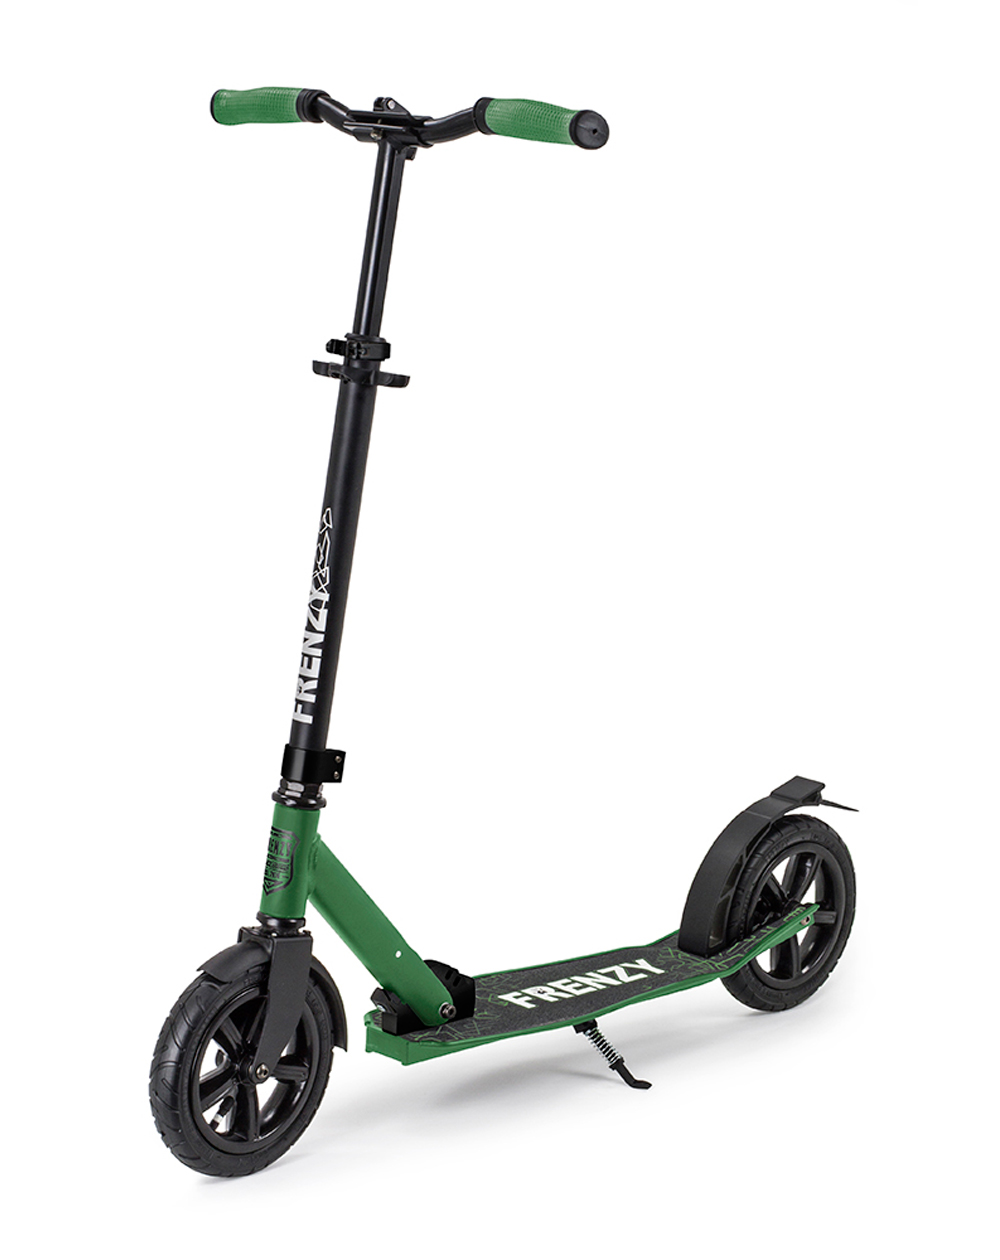 Frenzy 205mm Pneumatic Plus Recreational Scooter Military Green